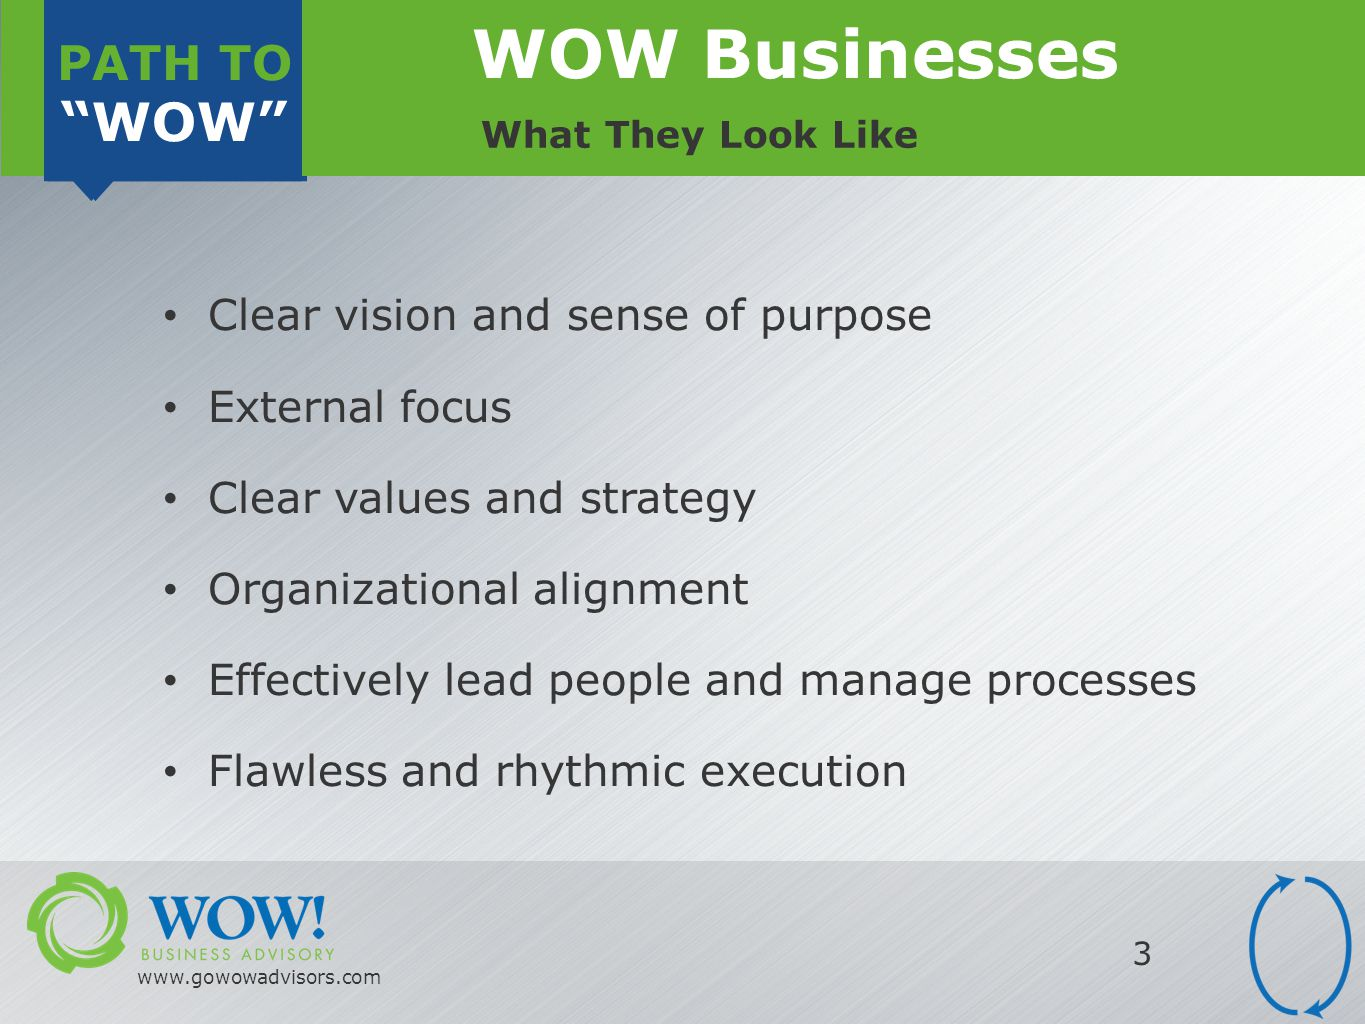 PATH TO WOW PATH TO WOW www.gowowadvisors.com 3 WOW Businesses What They Look Like Clear vision and sense of purpose External focus Clear values and strategy Organizational alignment Effectively lead people and manage processes Flawless and rhythmic execution